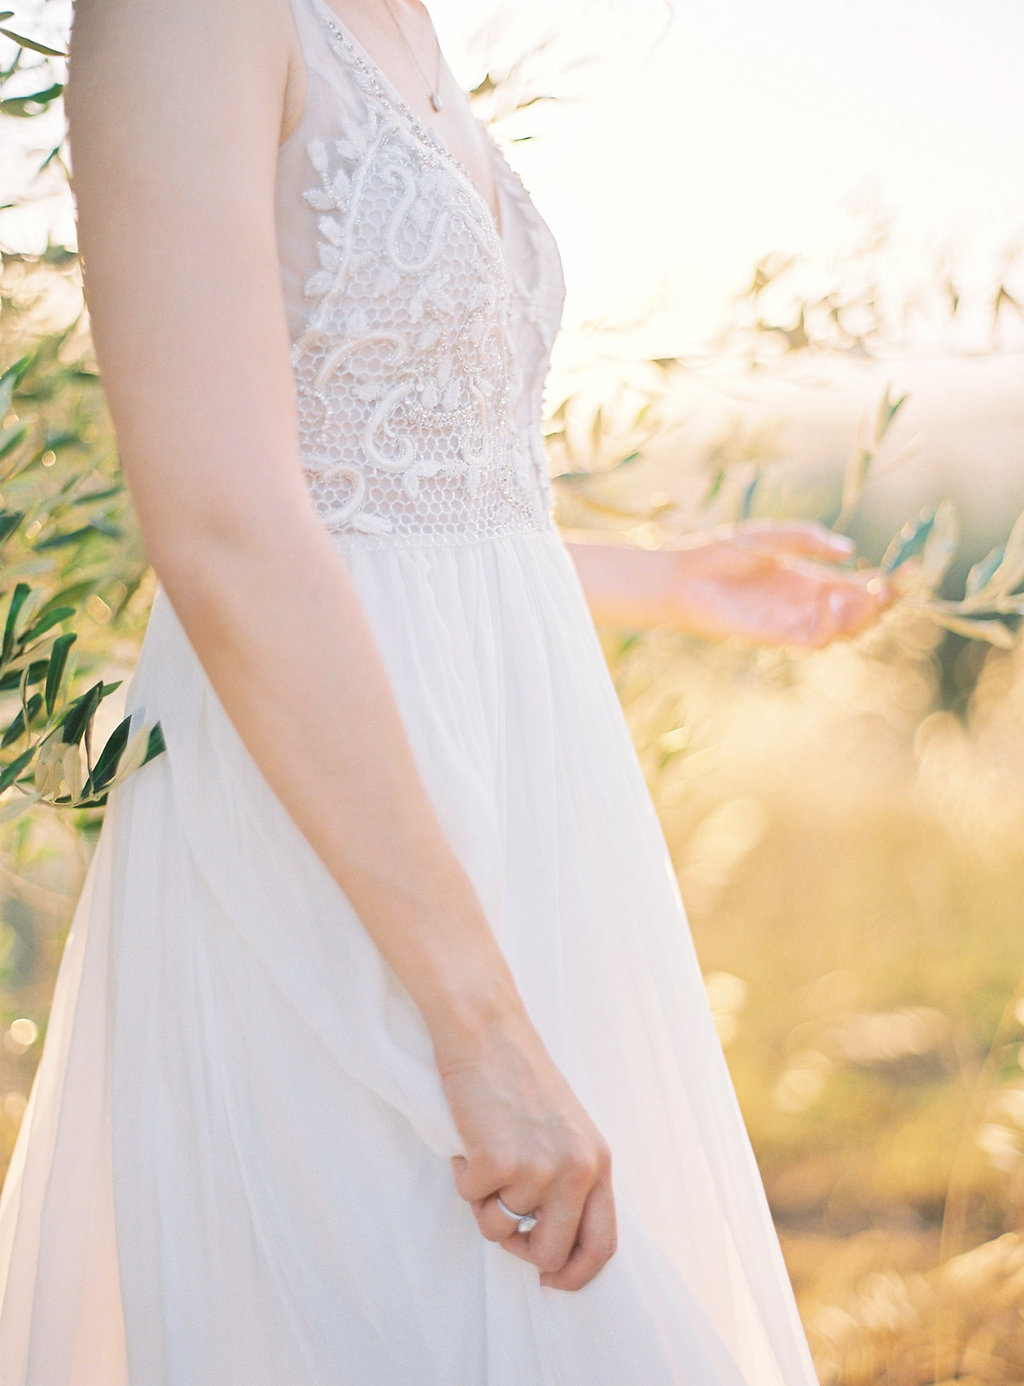 lace wedding dress details - photo by Katie Grant Photography http://ruffledblog.com/classically-beautiful-intimate-wedding-in-tuscany